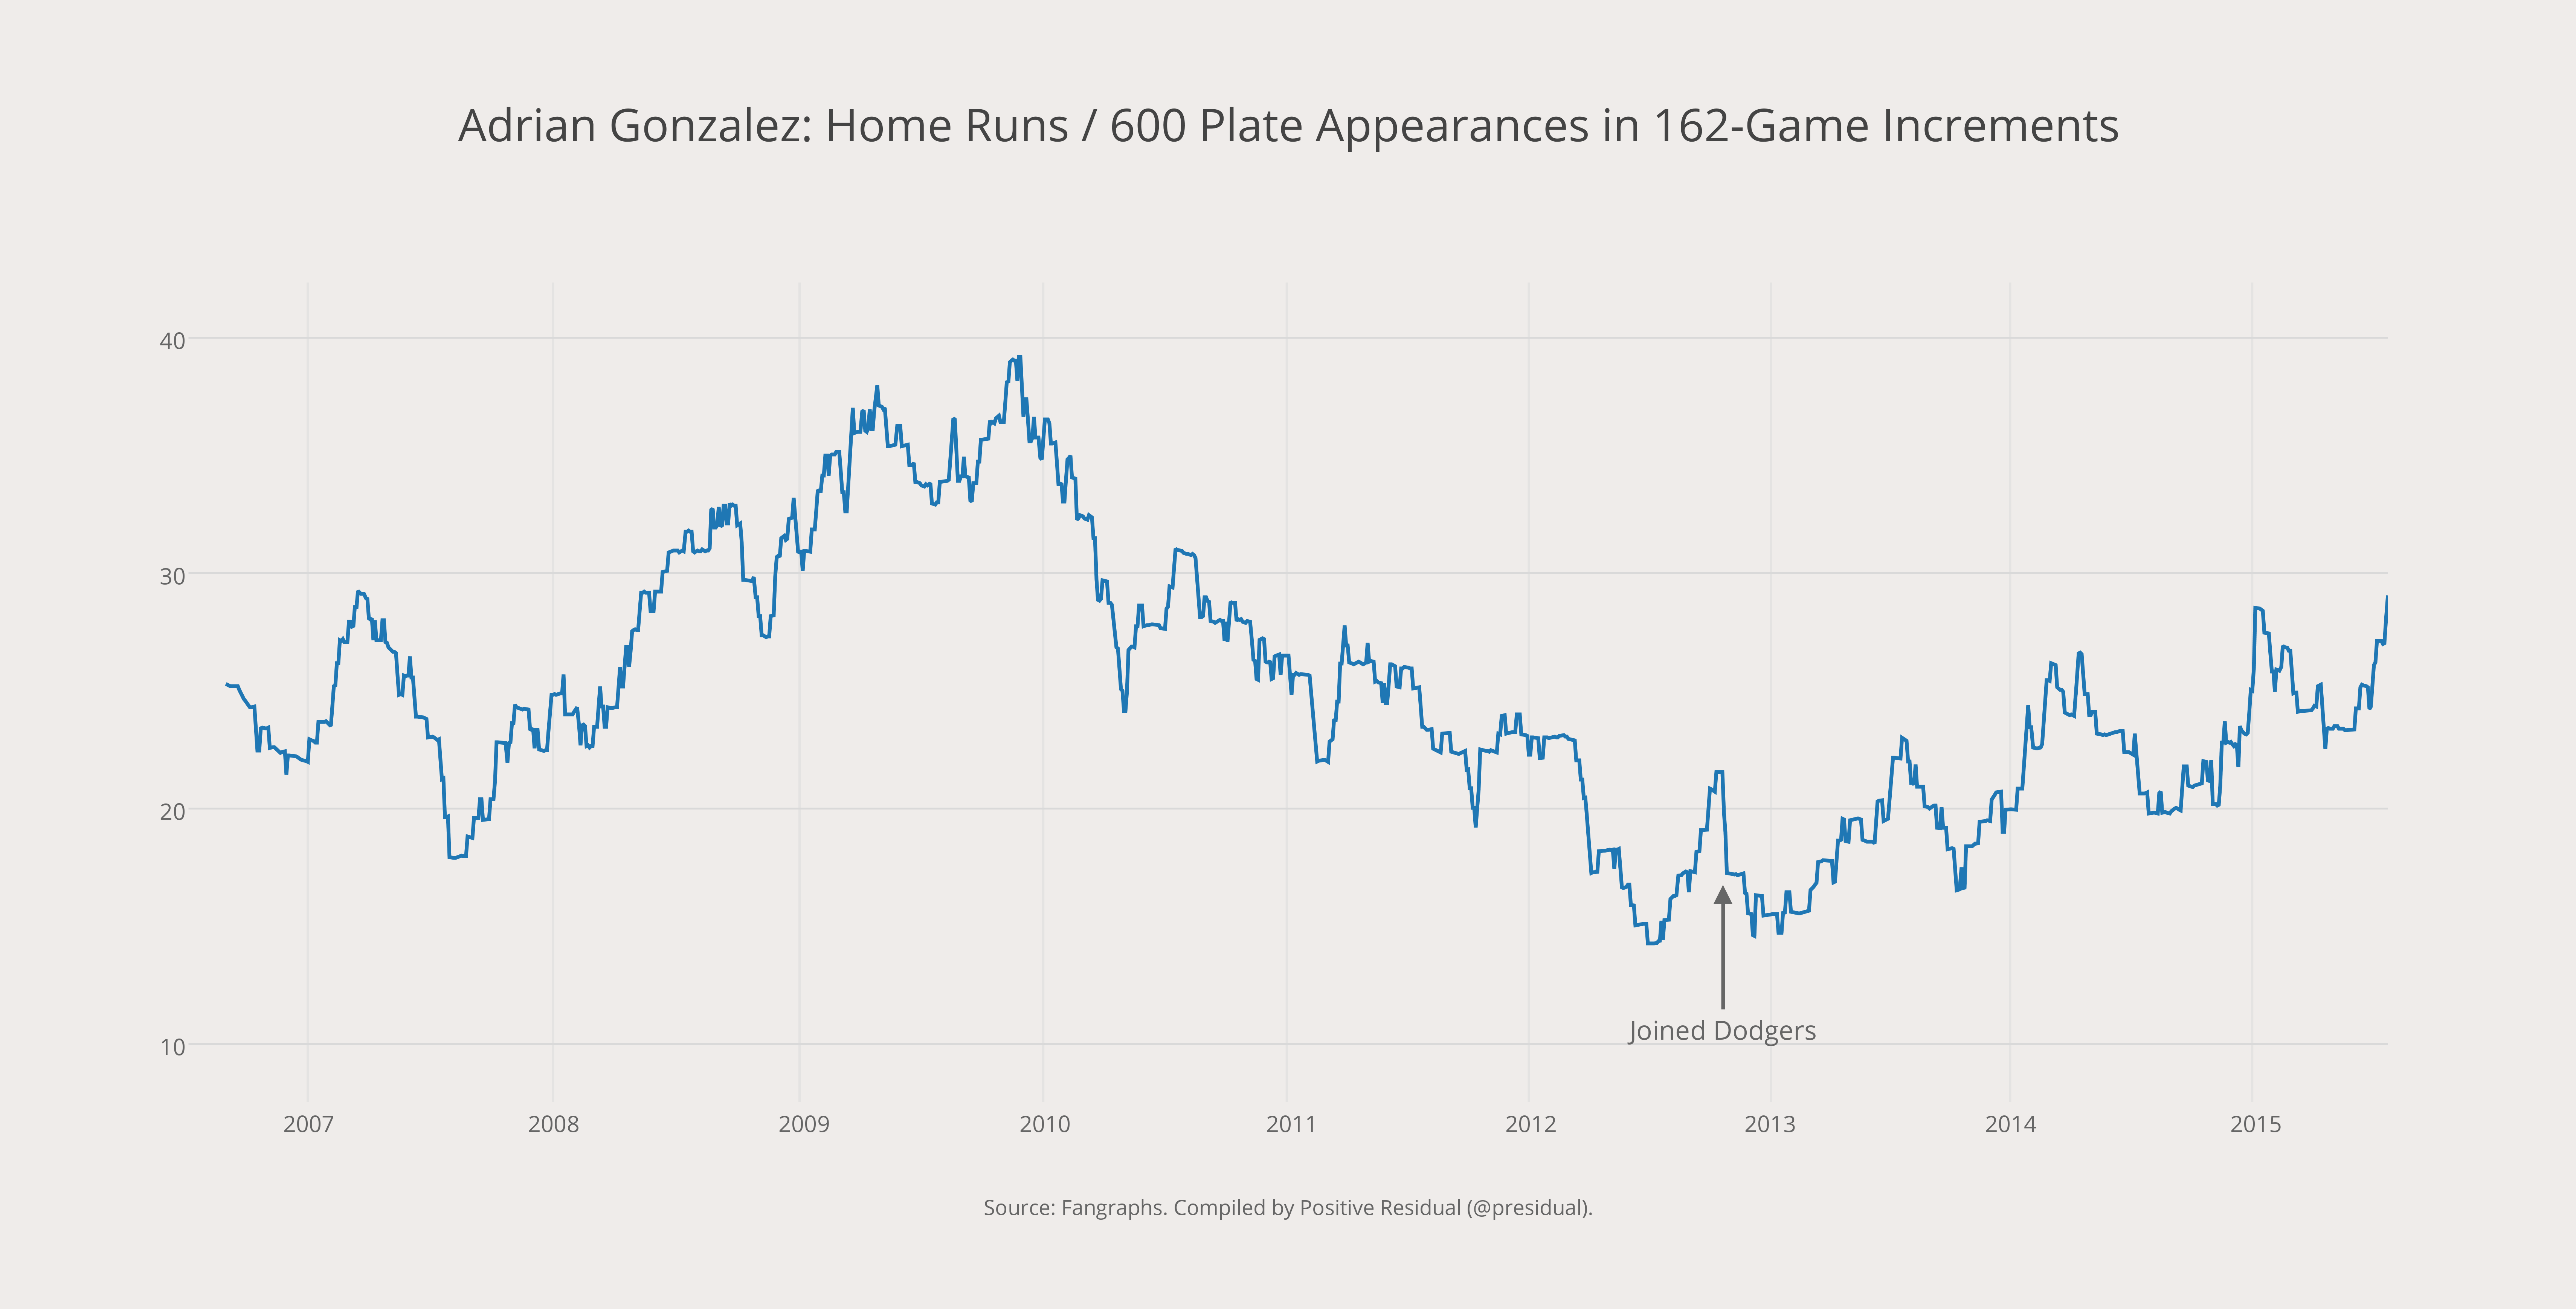 Adrian Gonzalez- Home Runs - 600 Plate Appearances in 162-Game Increments